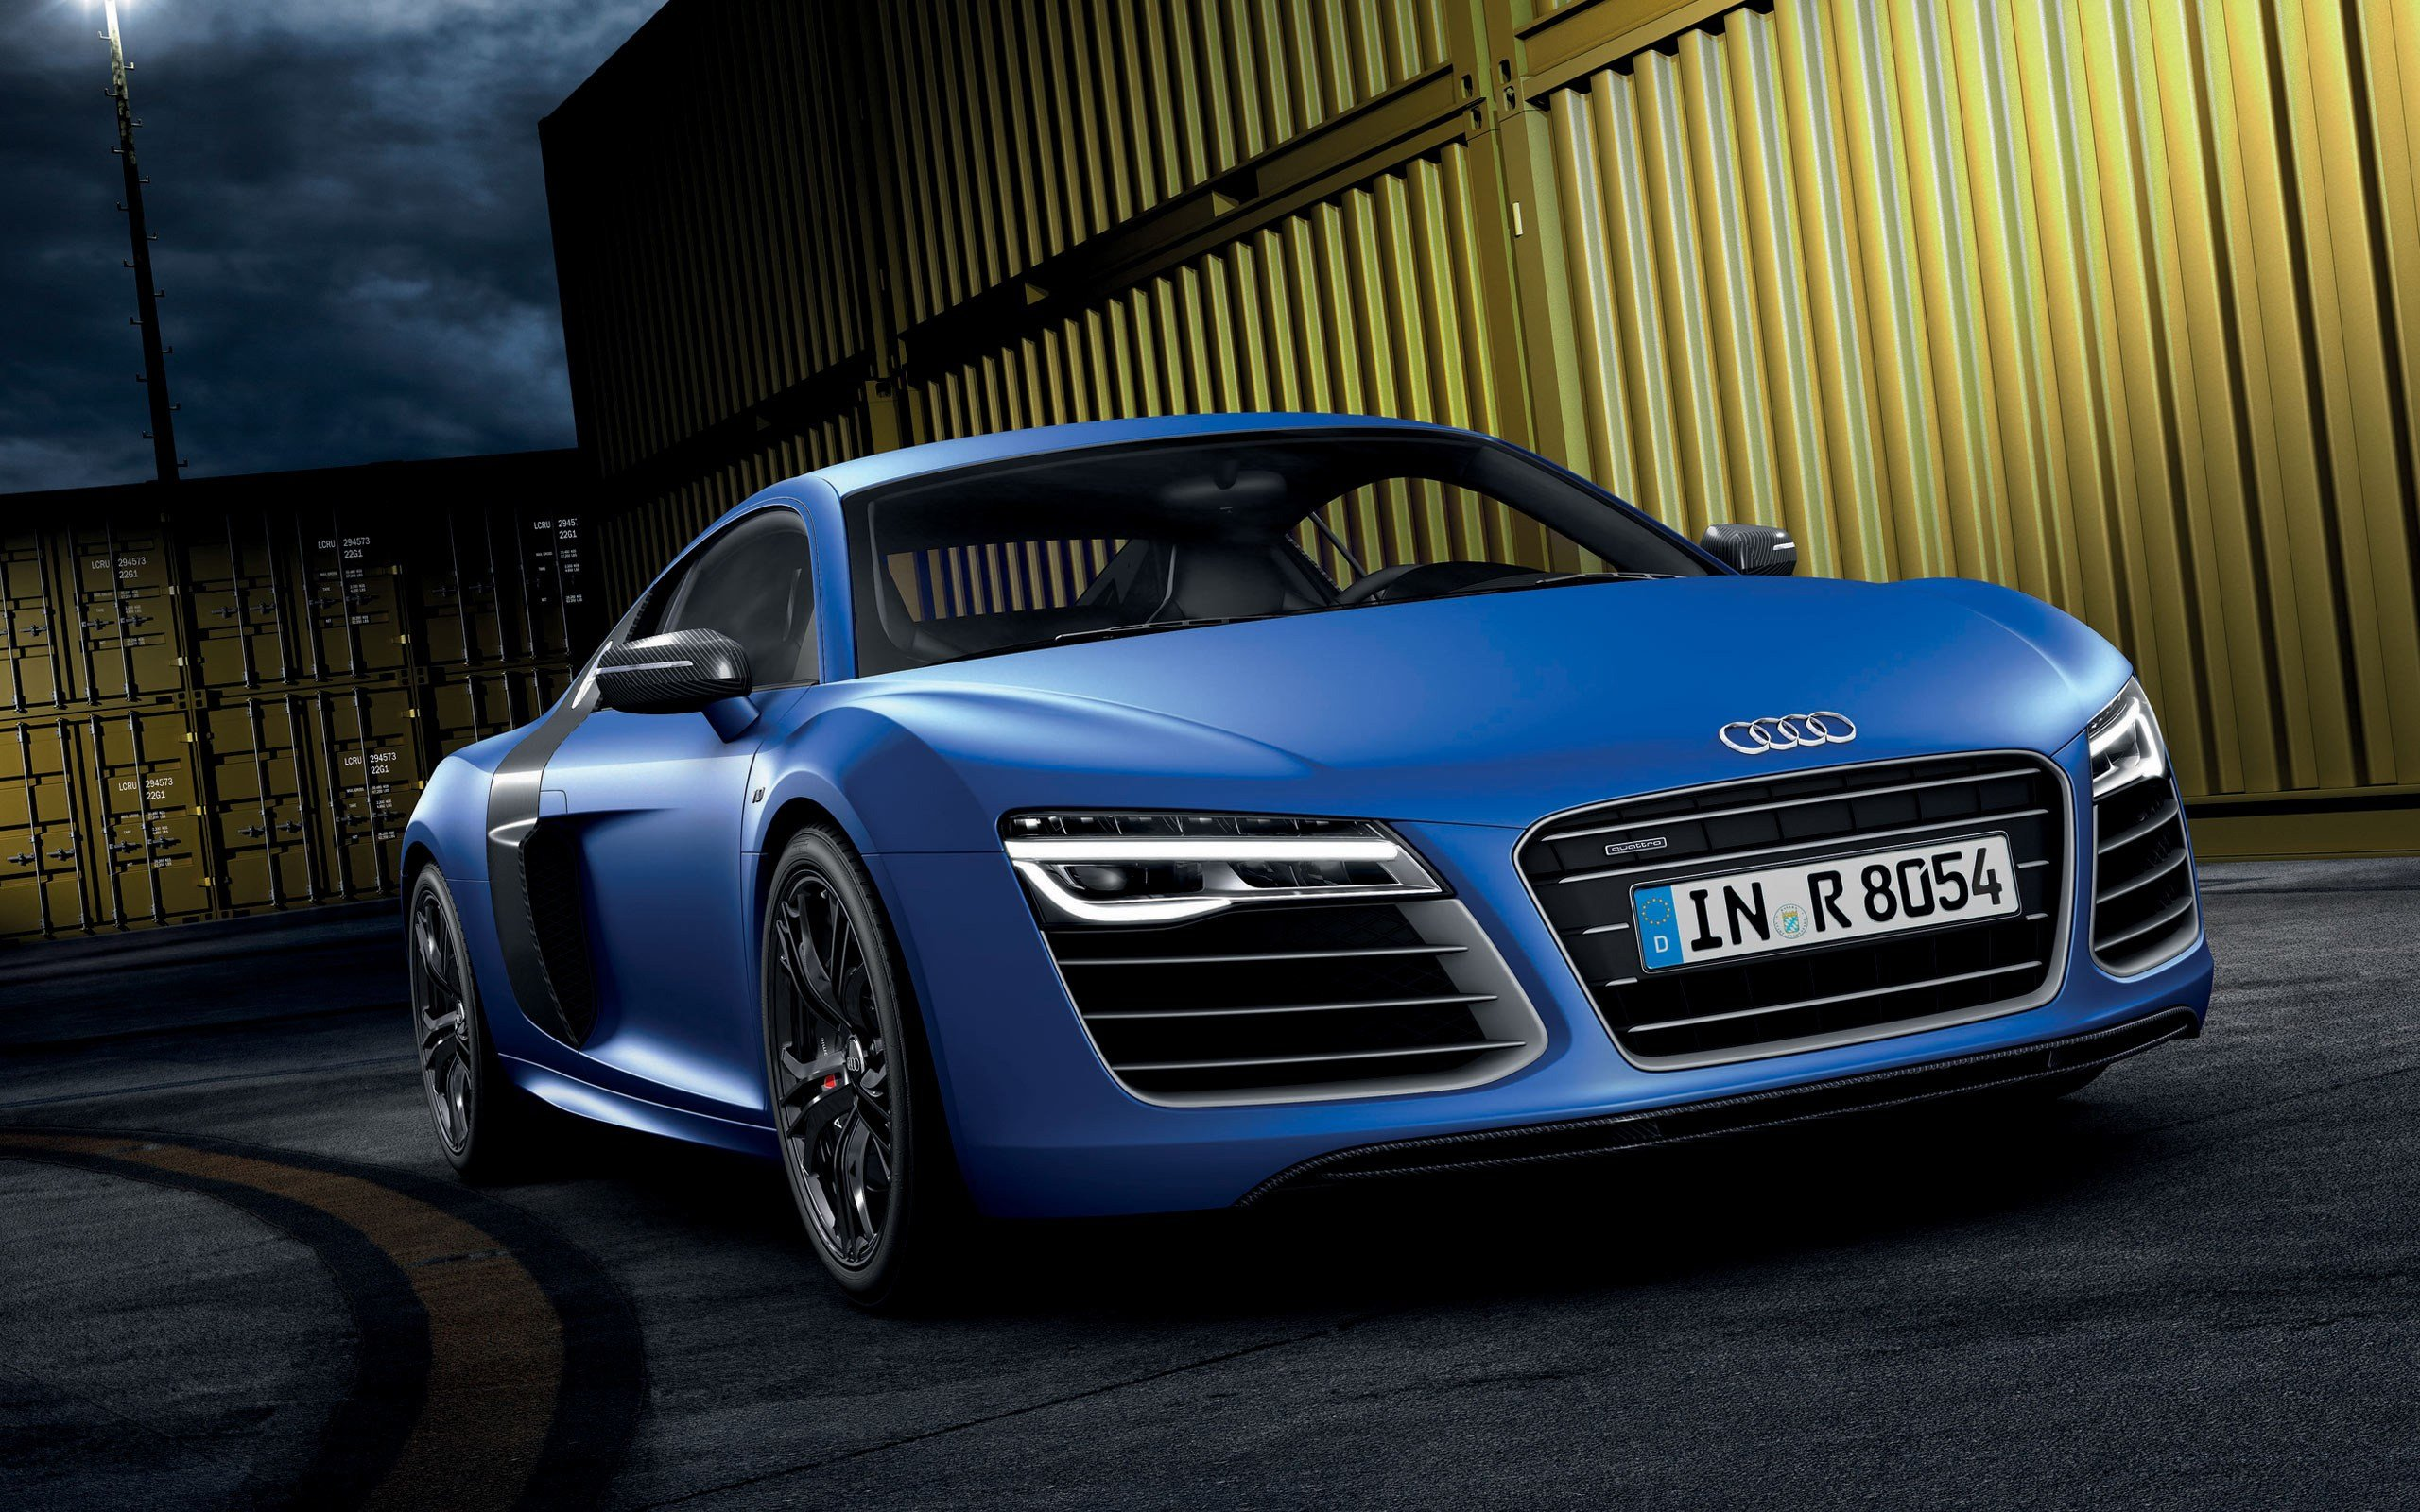 Latest 2013 Audi R8 V10 Plus Wallpaper Hd Car Wallpapers Id 3055 Free Download